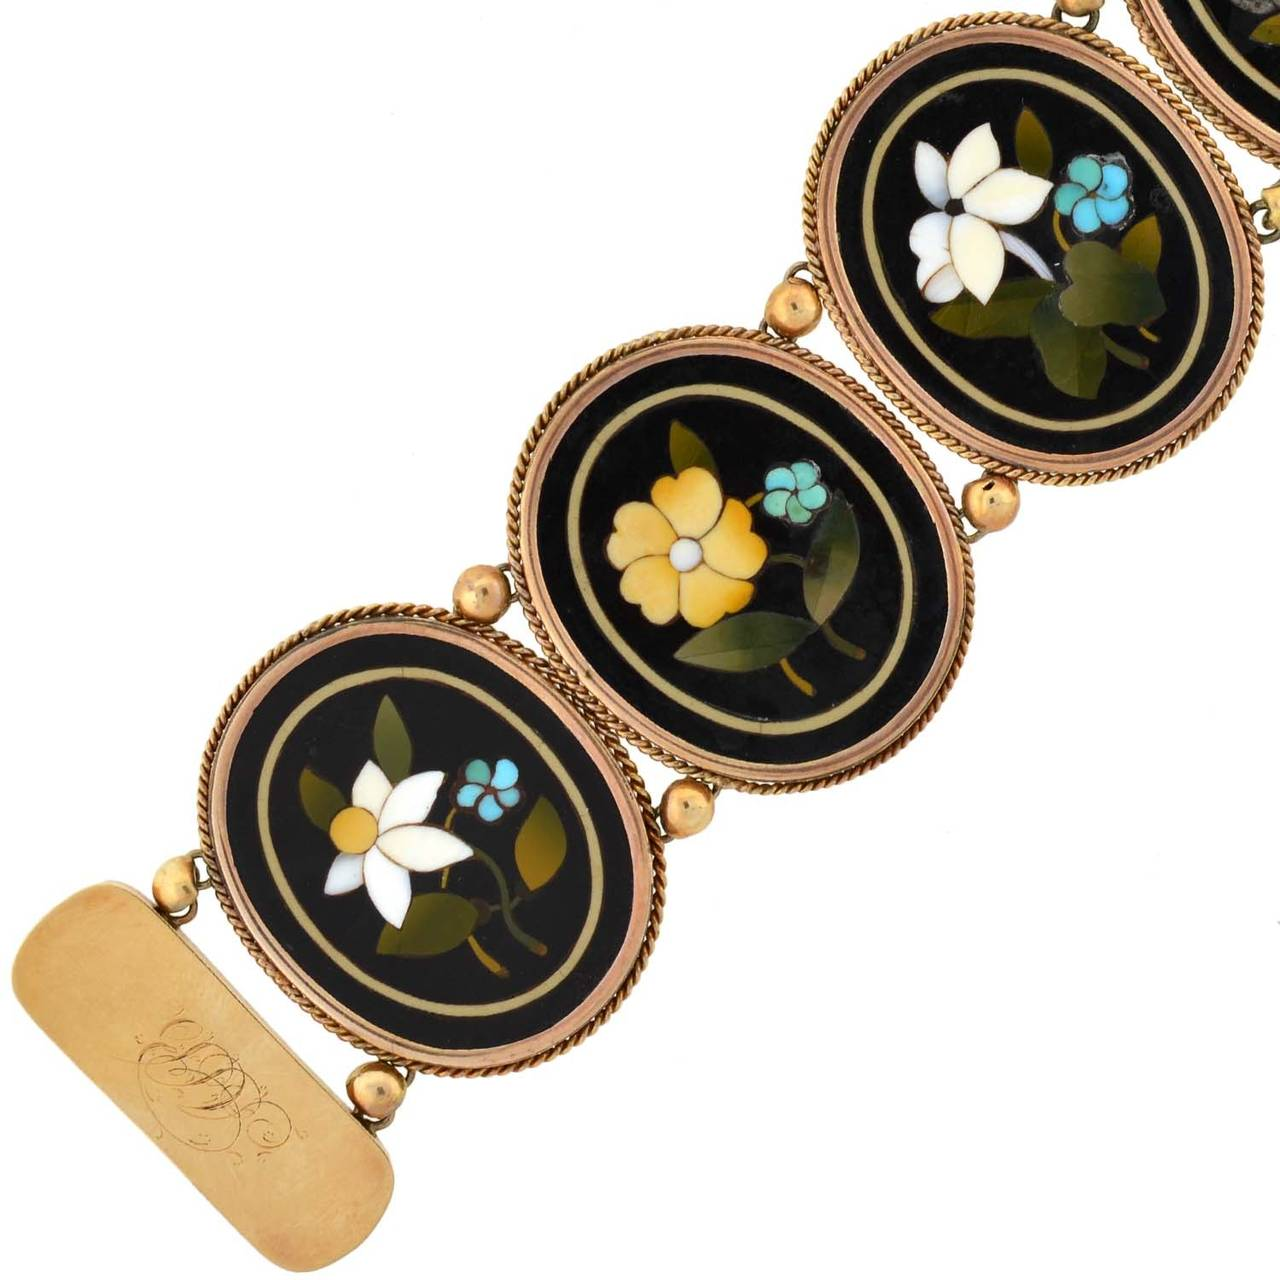 Victorian Important Pietra Dura Gold Link Bracelet In Excellent Condition For Sale In Narberth, PA